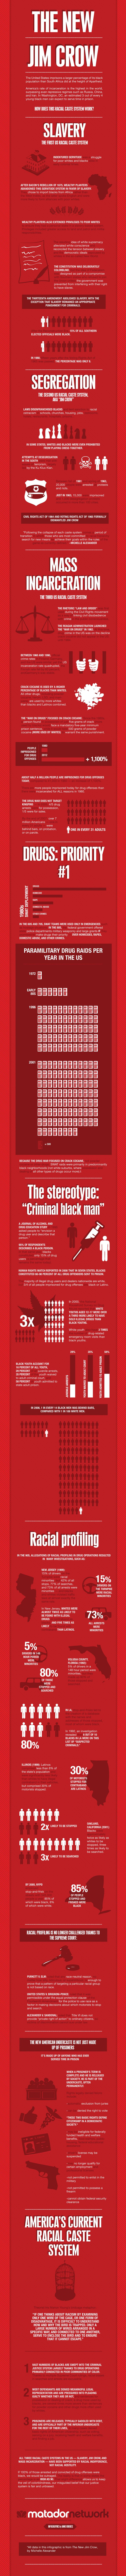 """This infographic represents what author, Michelle Alexander, has coined as the """"new Jim Crow"""", or the racial caste system that has evolved out of the drug war."""